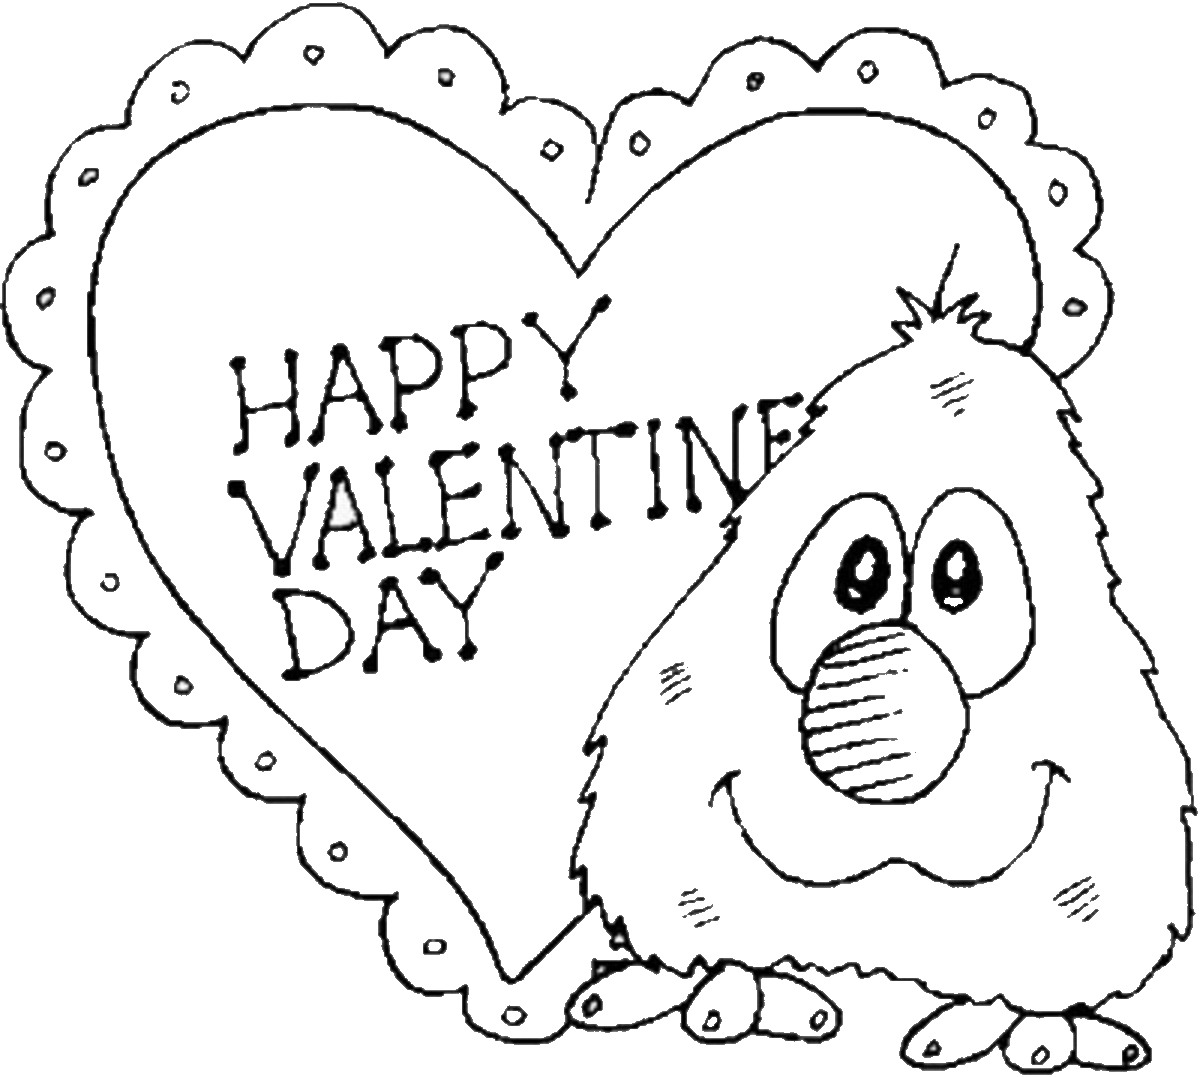 Valentines Day Printable Coloring Pages at GetDrawings.com ...